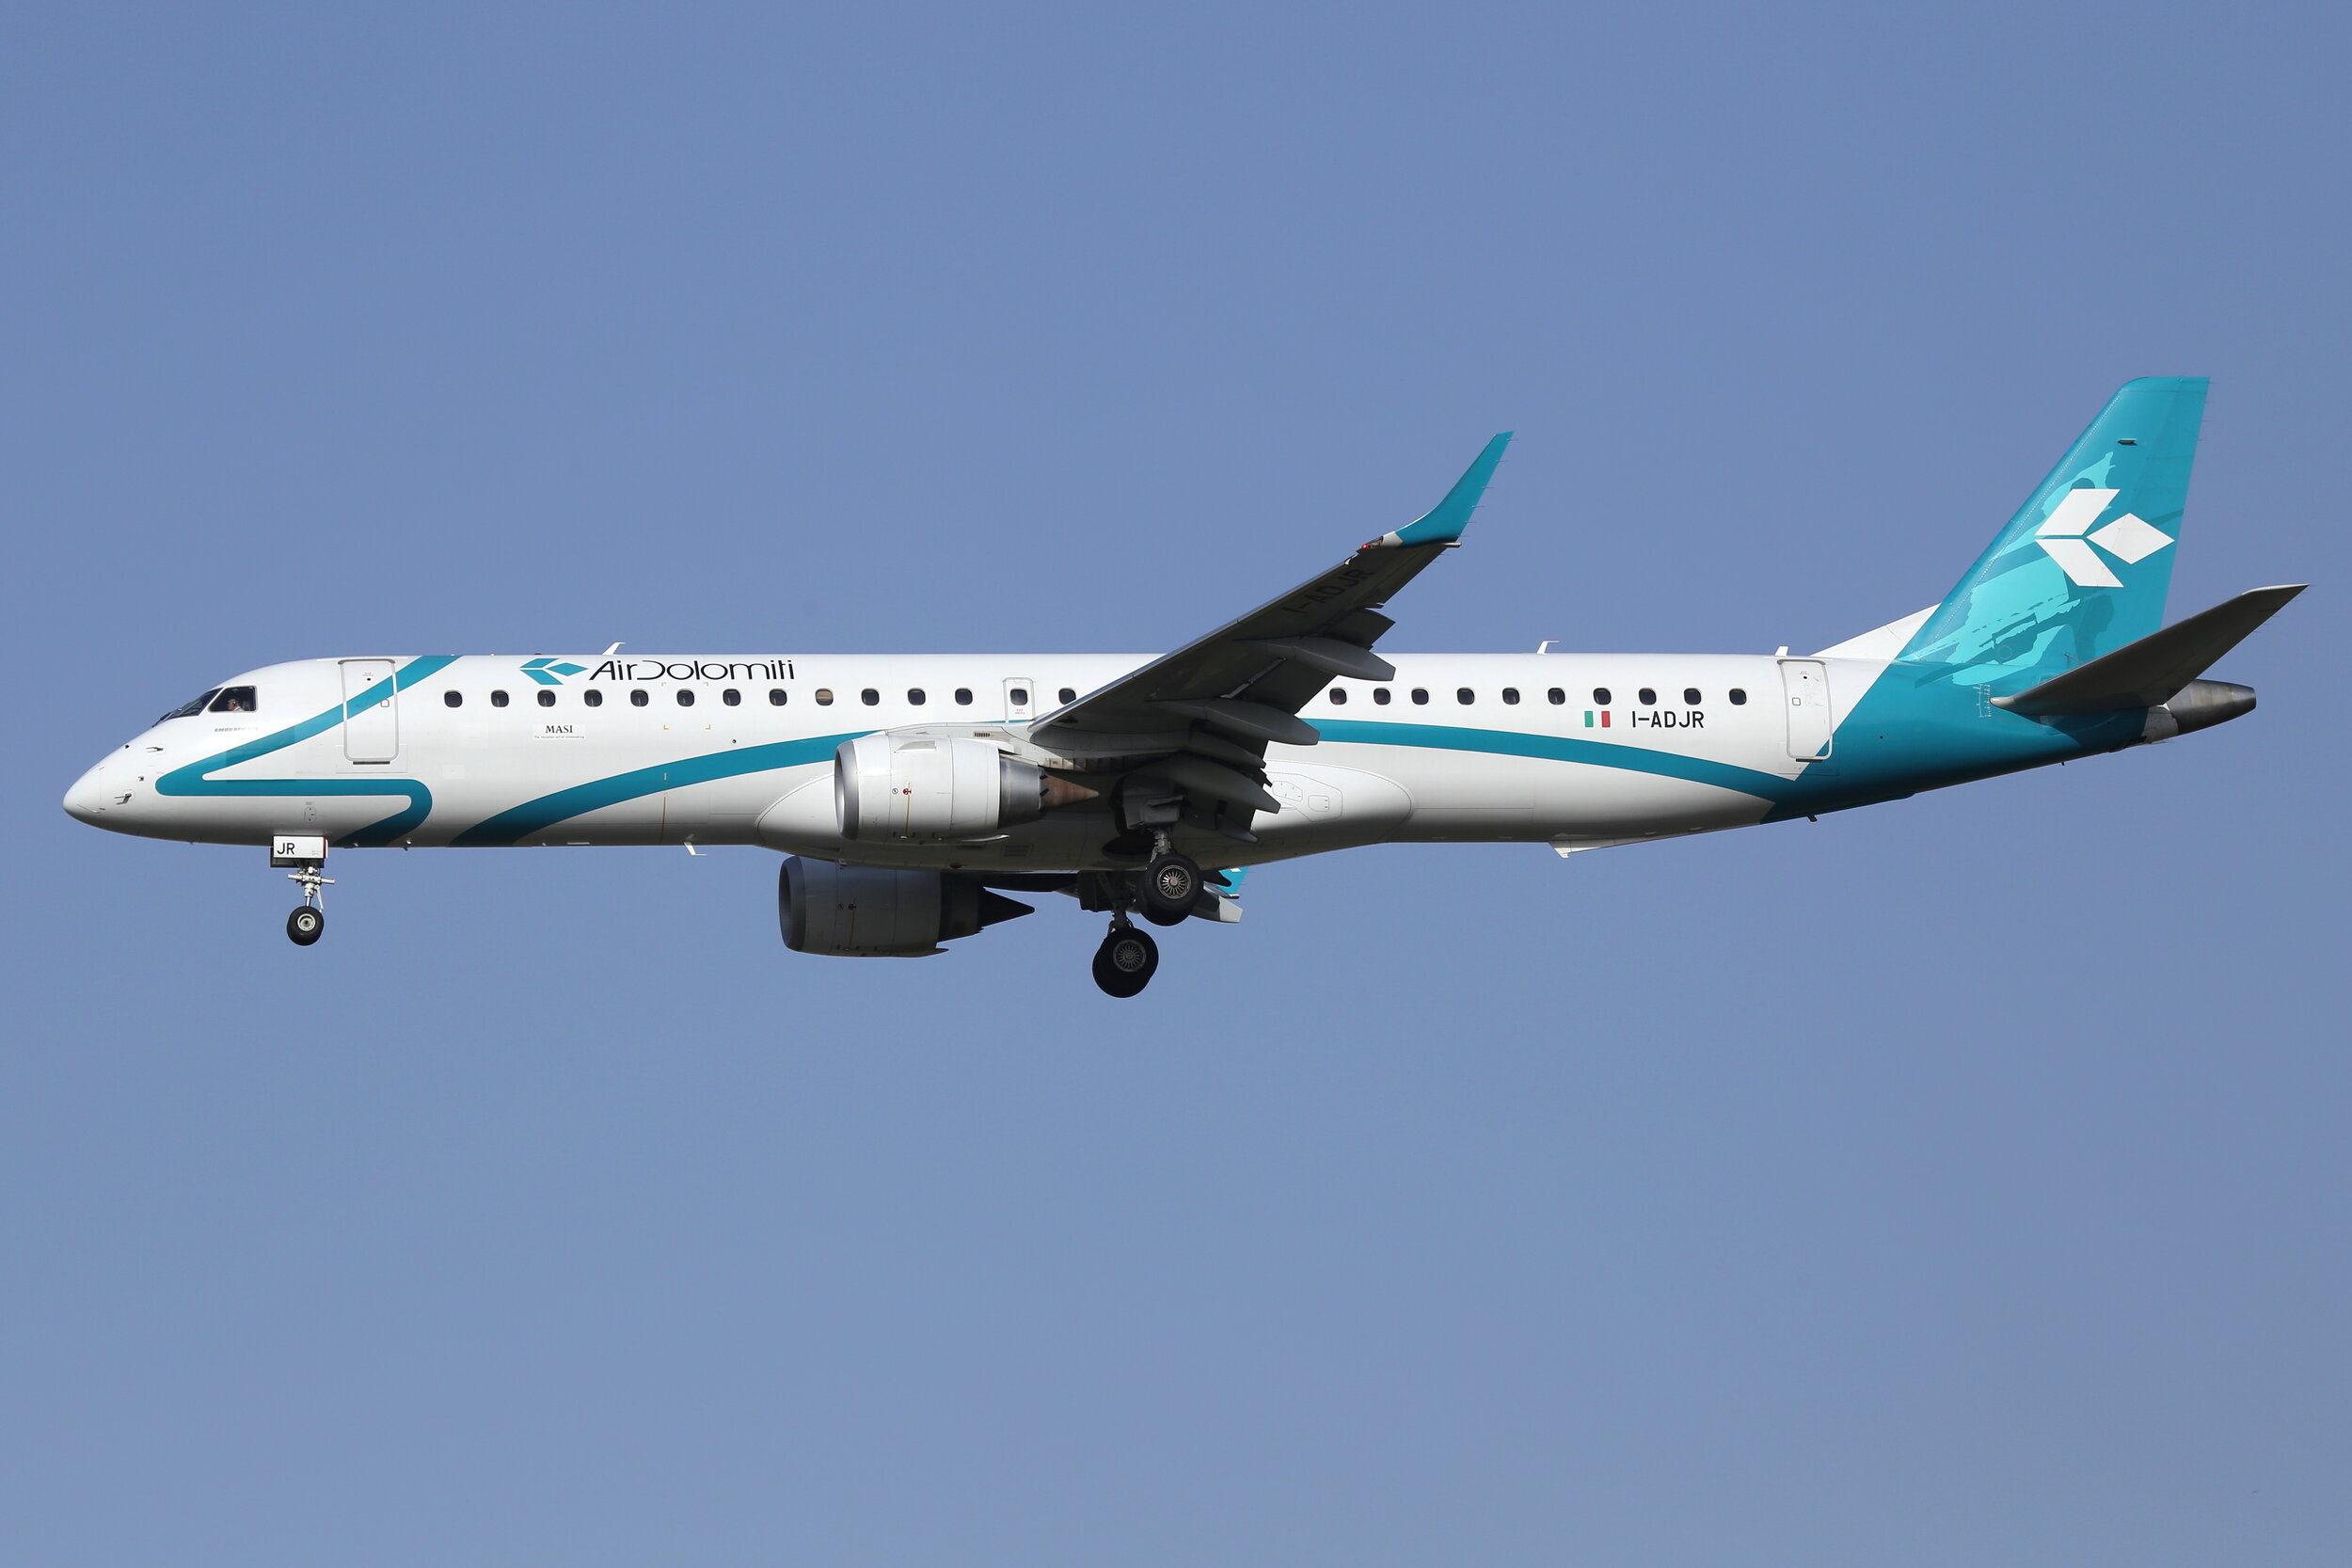 Air Dolomiti Embraer E195LR I-ADJR was captured on approach to Toulouse Blagnac by John Wood on 17th September 2019.